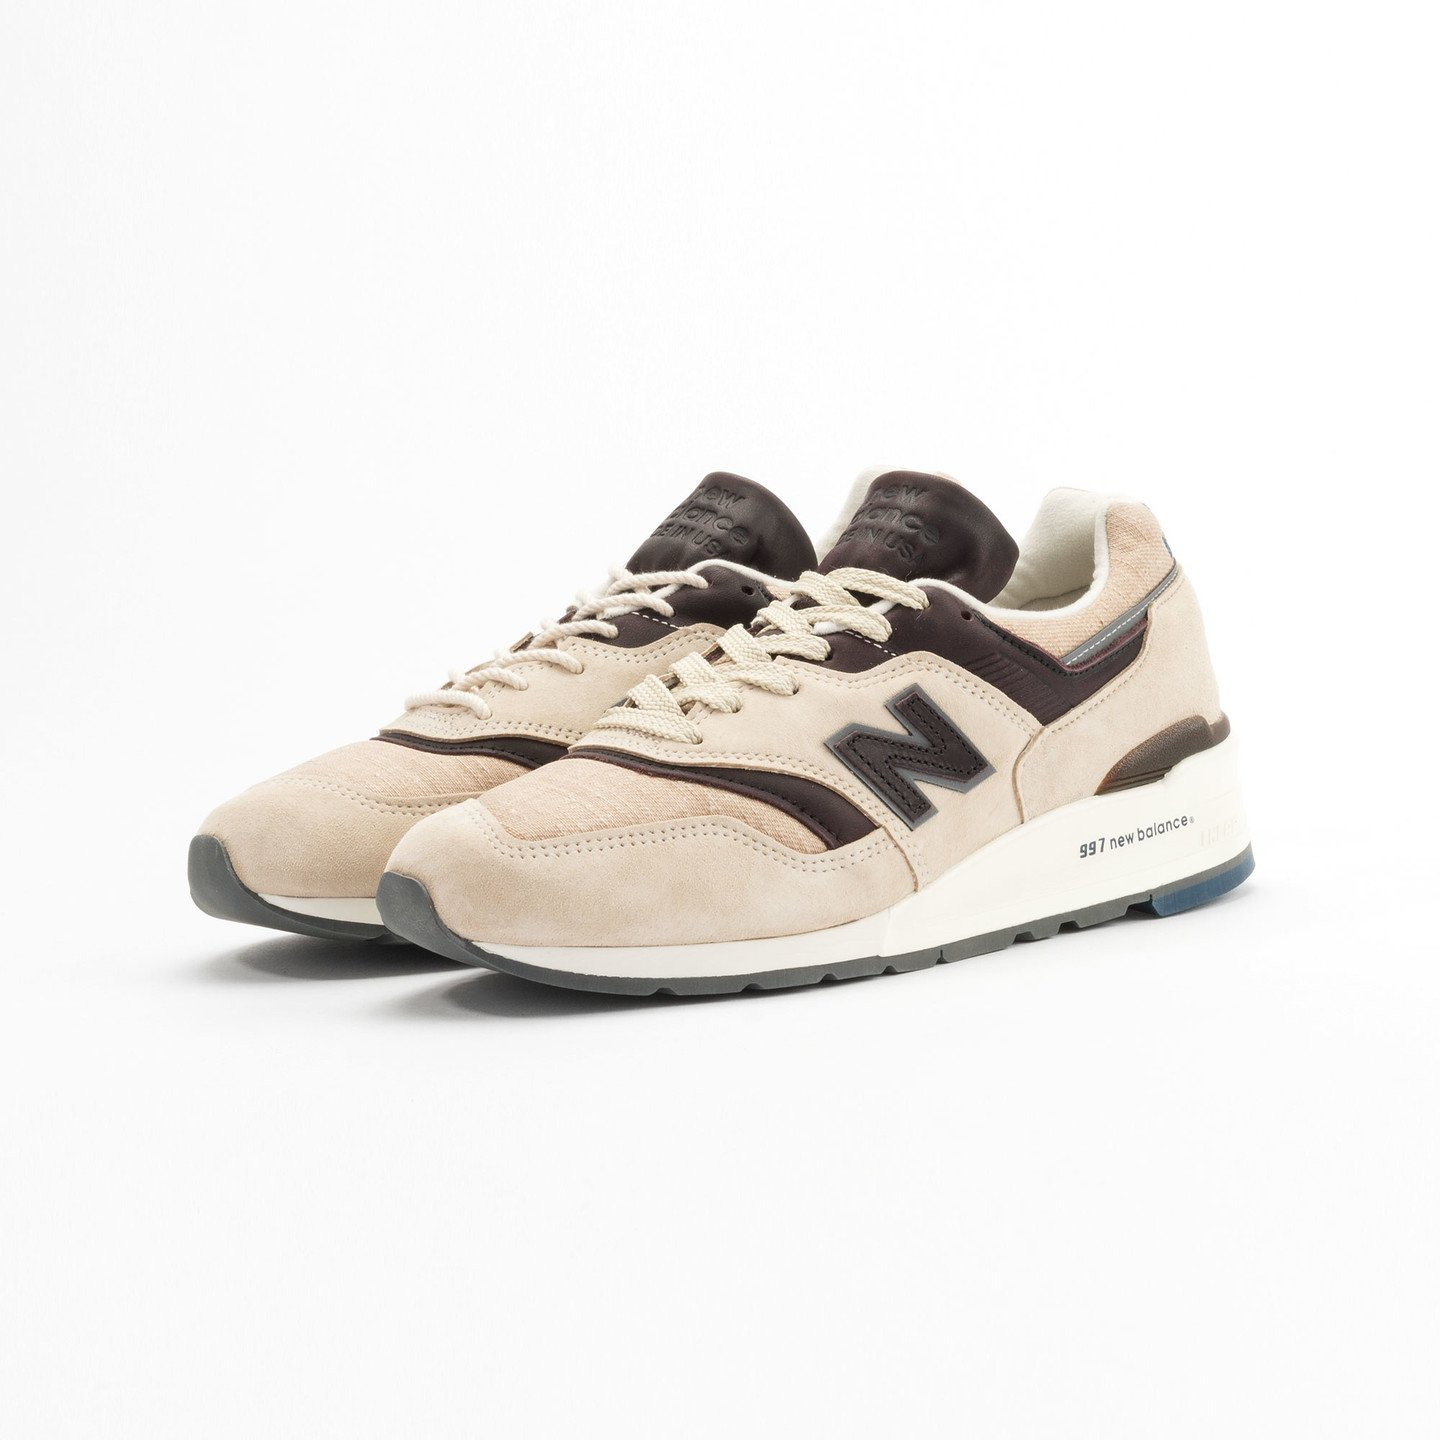 New Balance M997 DSAI - Made in USA Sand / Antique Brown M997DSAI-45